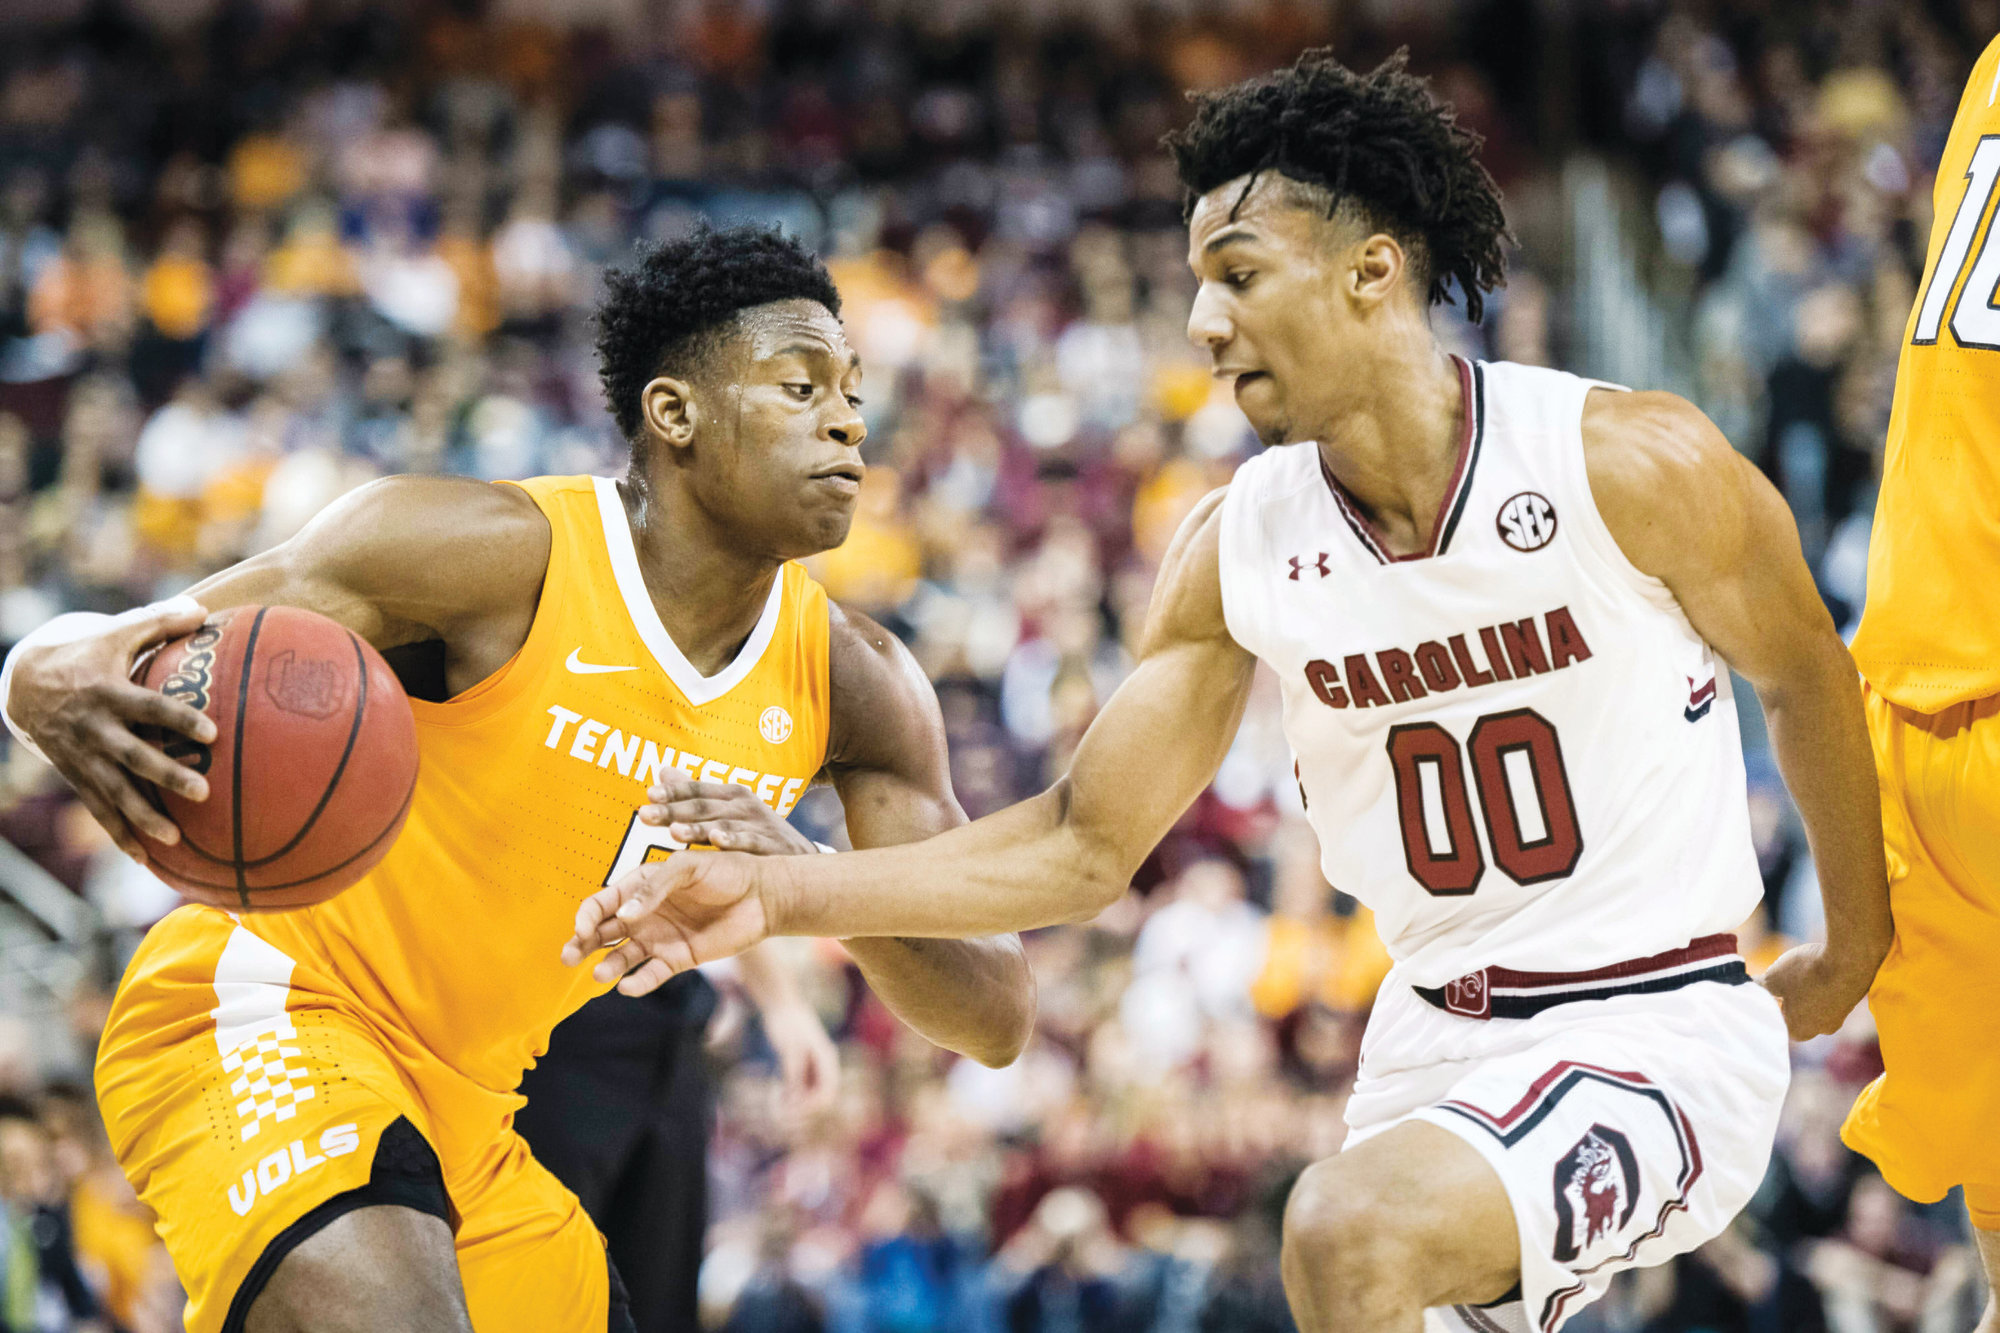 Tennessee guard Admiral Schofield, left, drives to the hoop against South Carolina guard AJ Lawson during the top-ranked Volunteers' 92-70 win on Tuesday in Columbia.